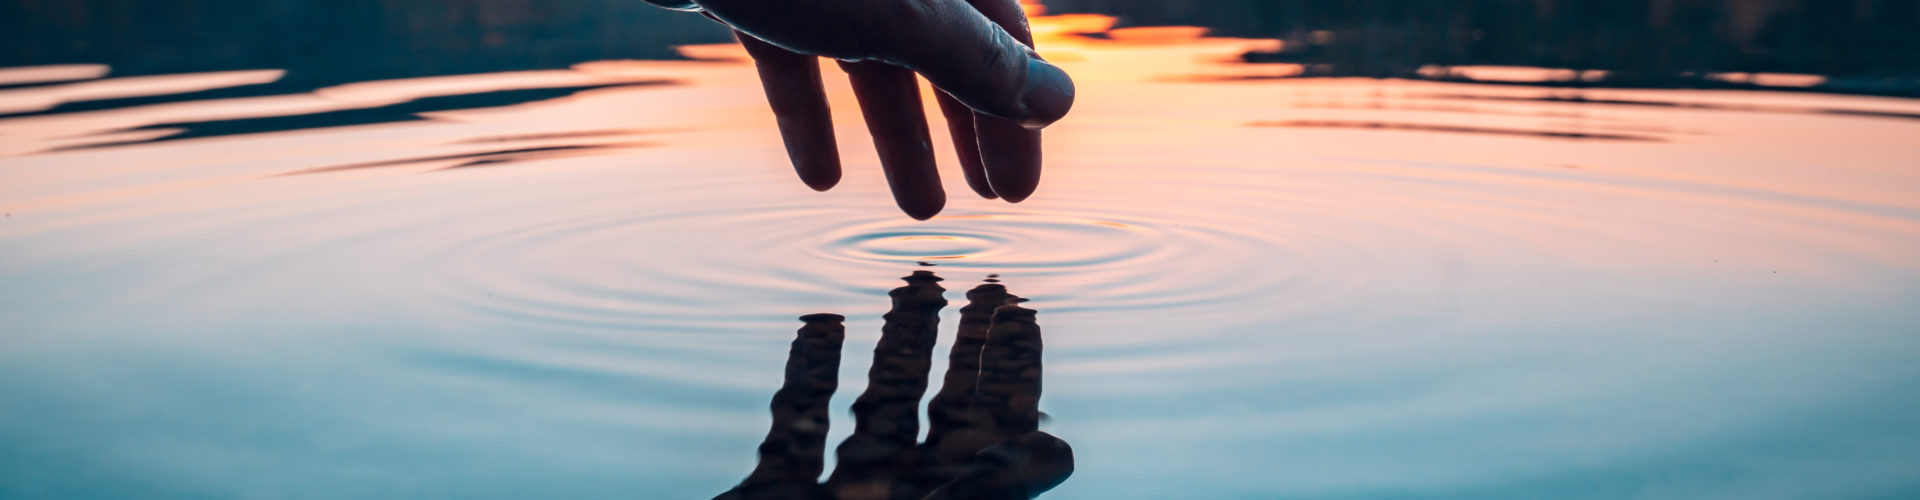 Finger touches surface of mountain lake. Hand reflection